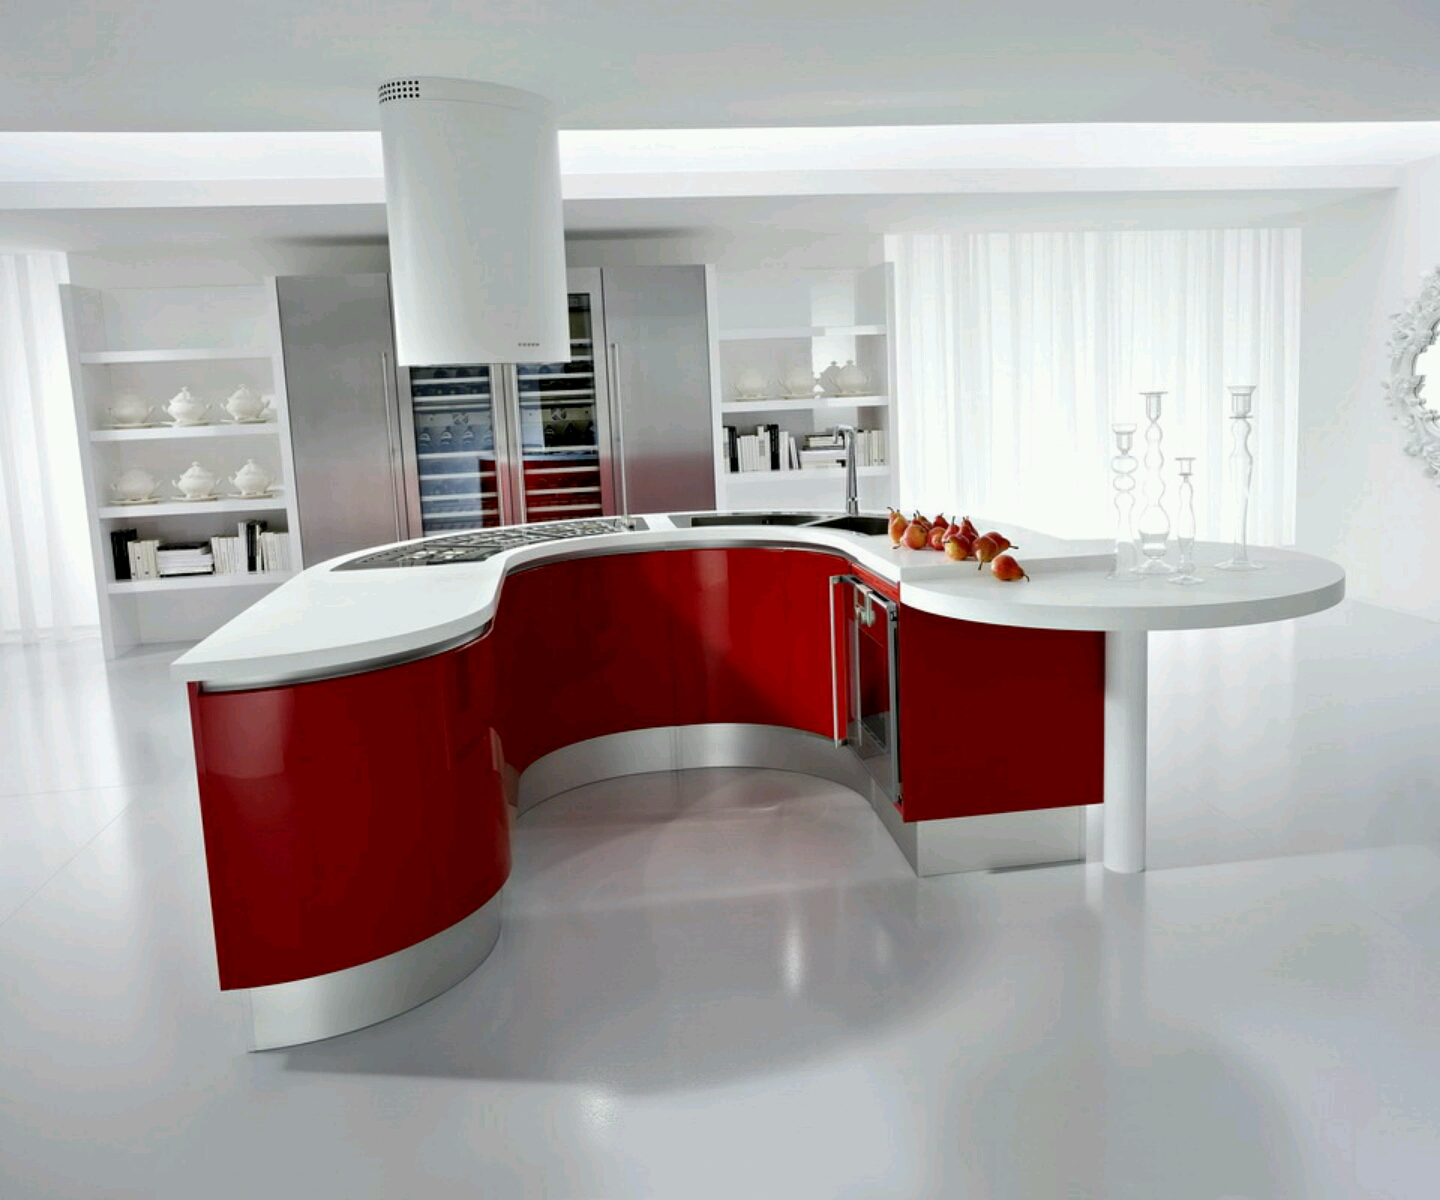 Modern kitchen cabinets designs ideas furniture gallery for Modern kitchen ideas